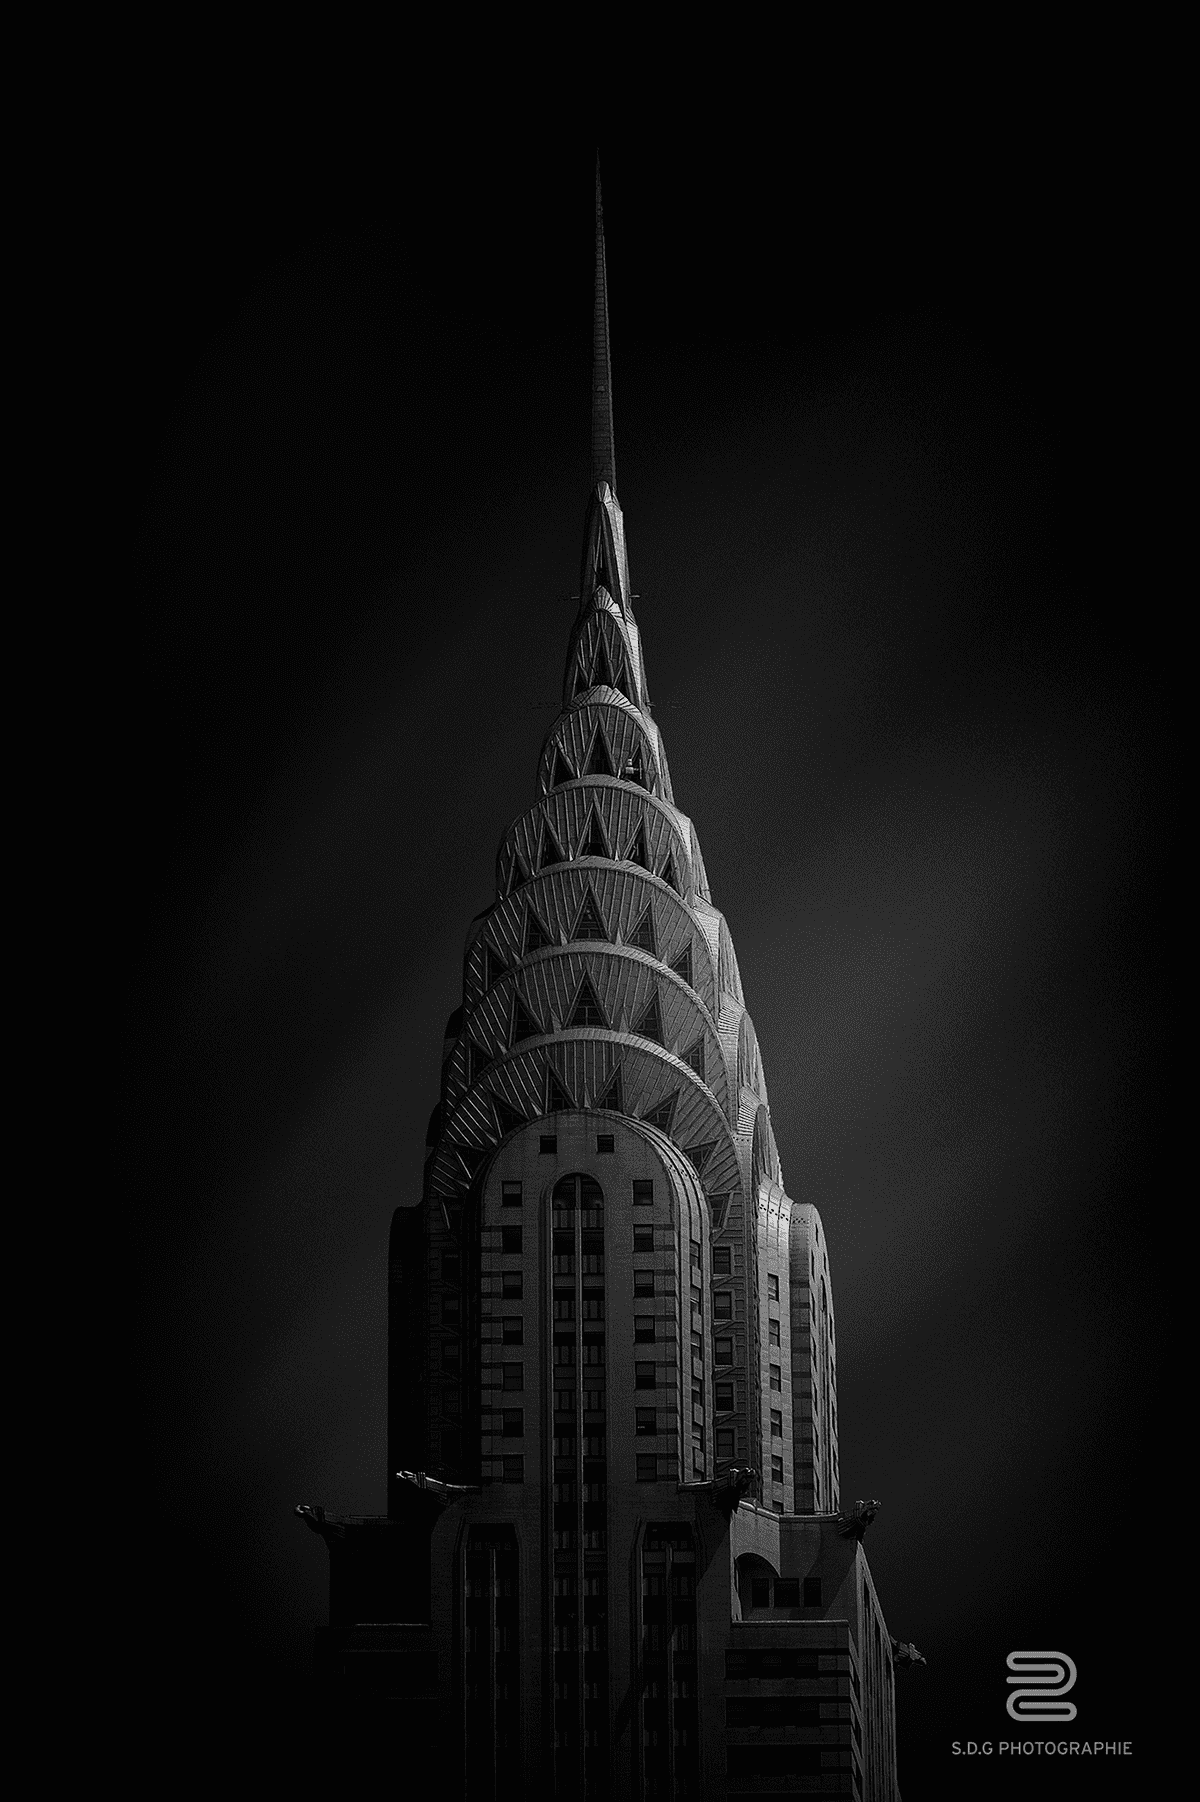 Sebastien Del Grosso Creates Moody Portraits of New York City's Architectural Icons